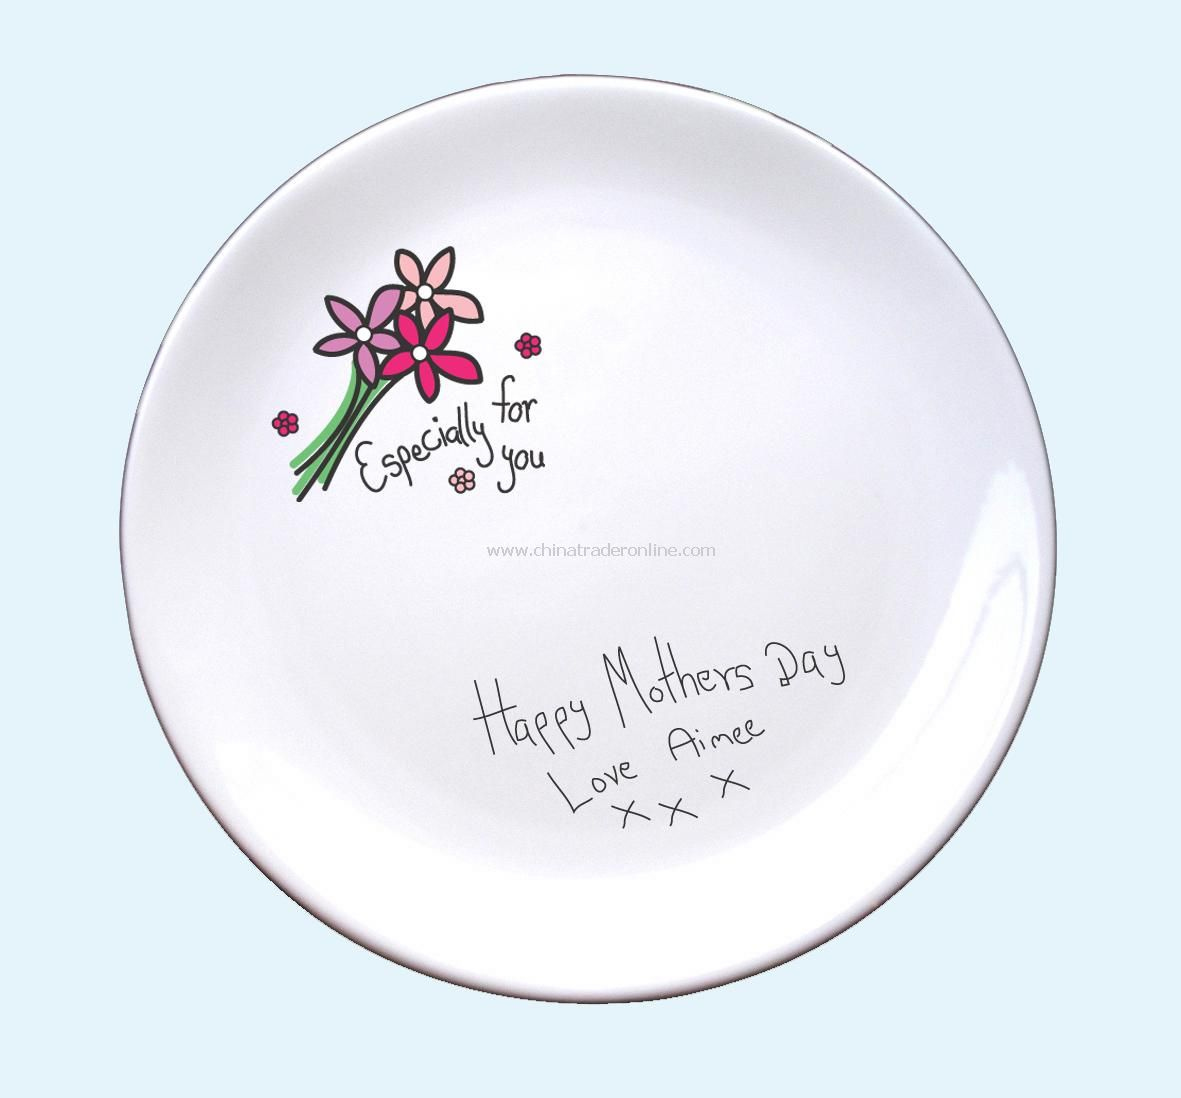 Especially For You Signature Plate